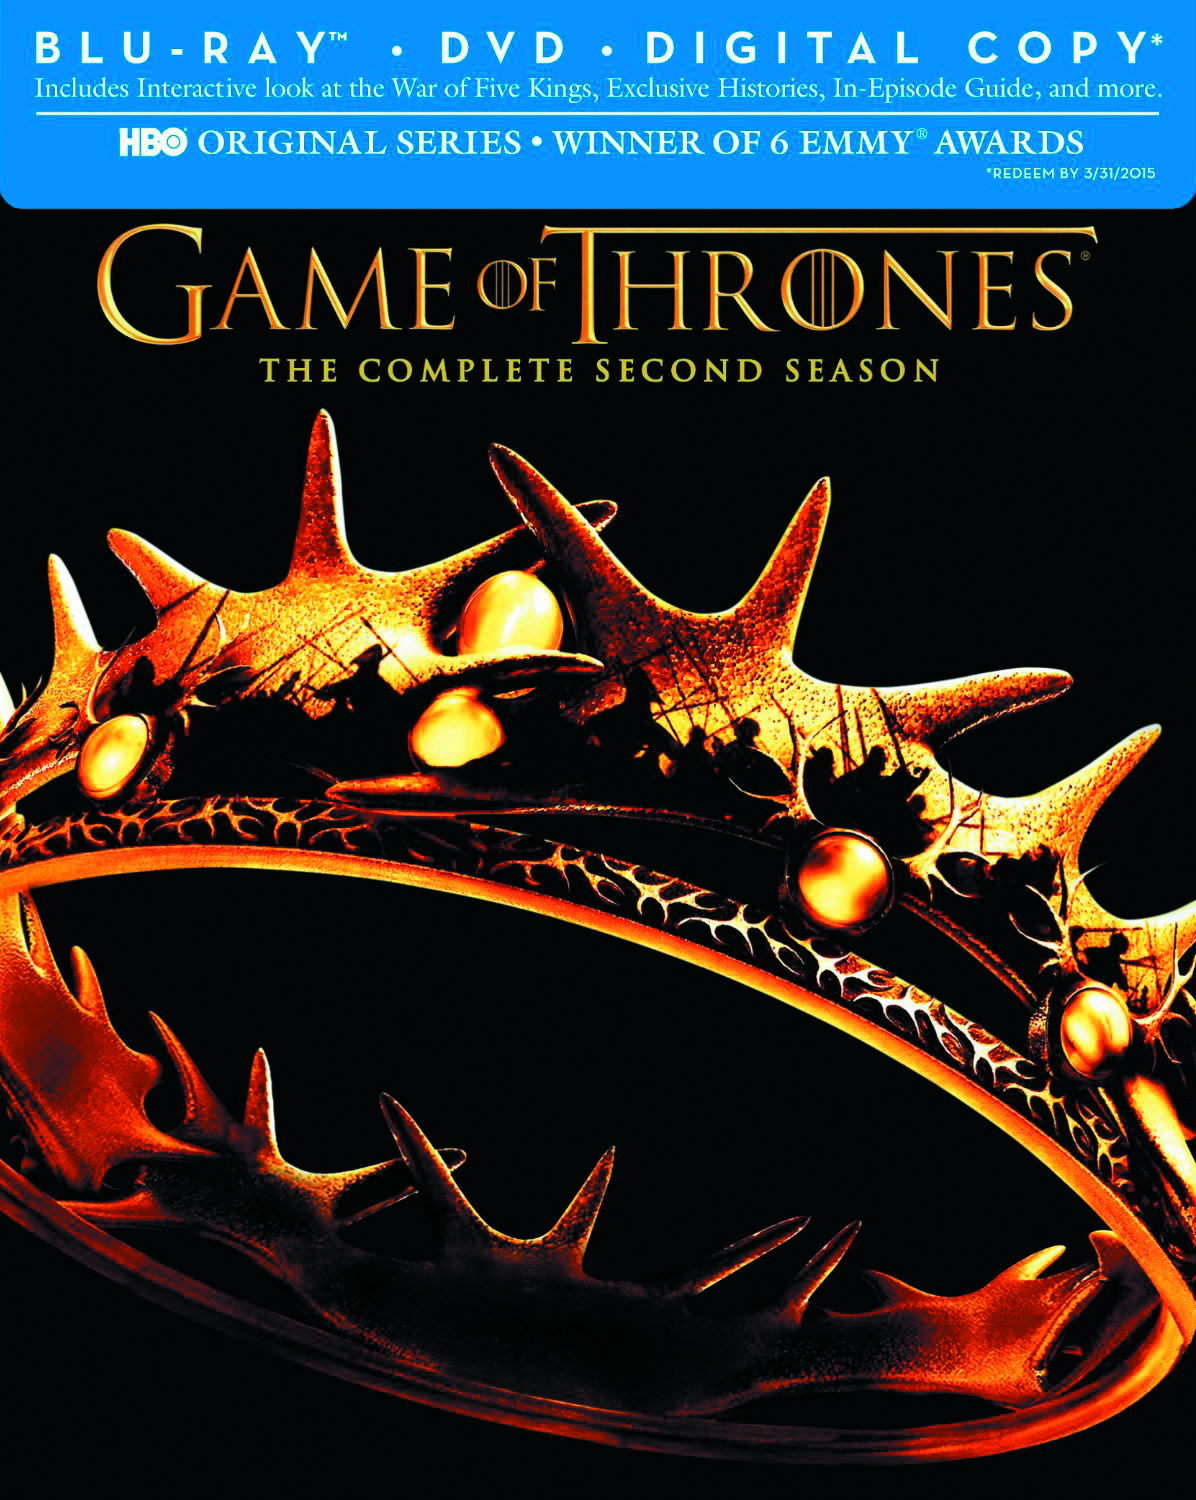 GAME OF THRONES DVD SEA 02